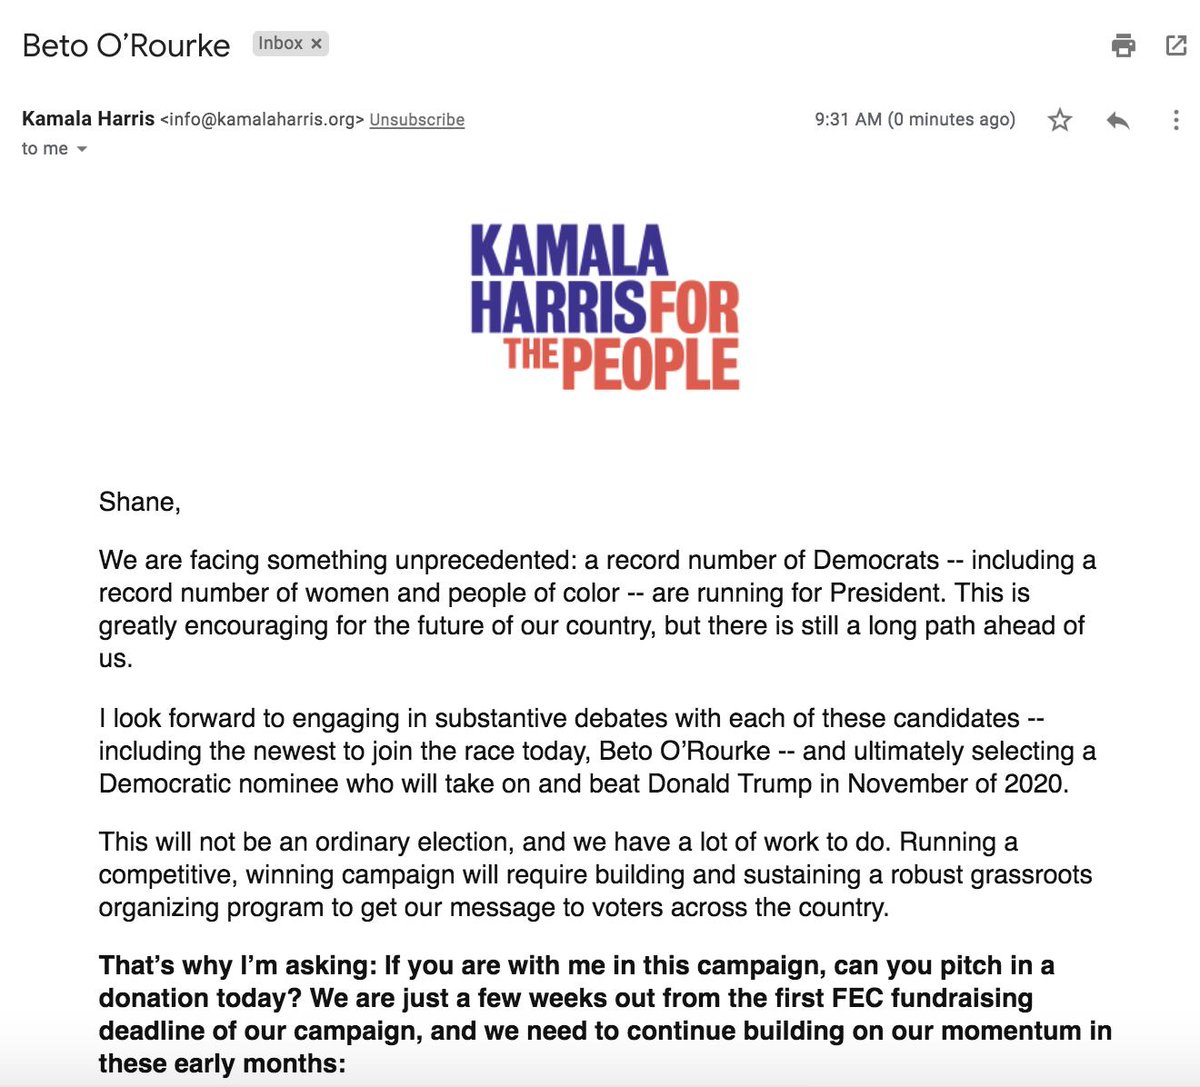 Shane Goldmacher On Twitter On The Day He Enters The Race Kamala Harris Puts Beto O Rourke In The Subject Line Of A Fundraising Email